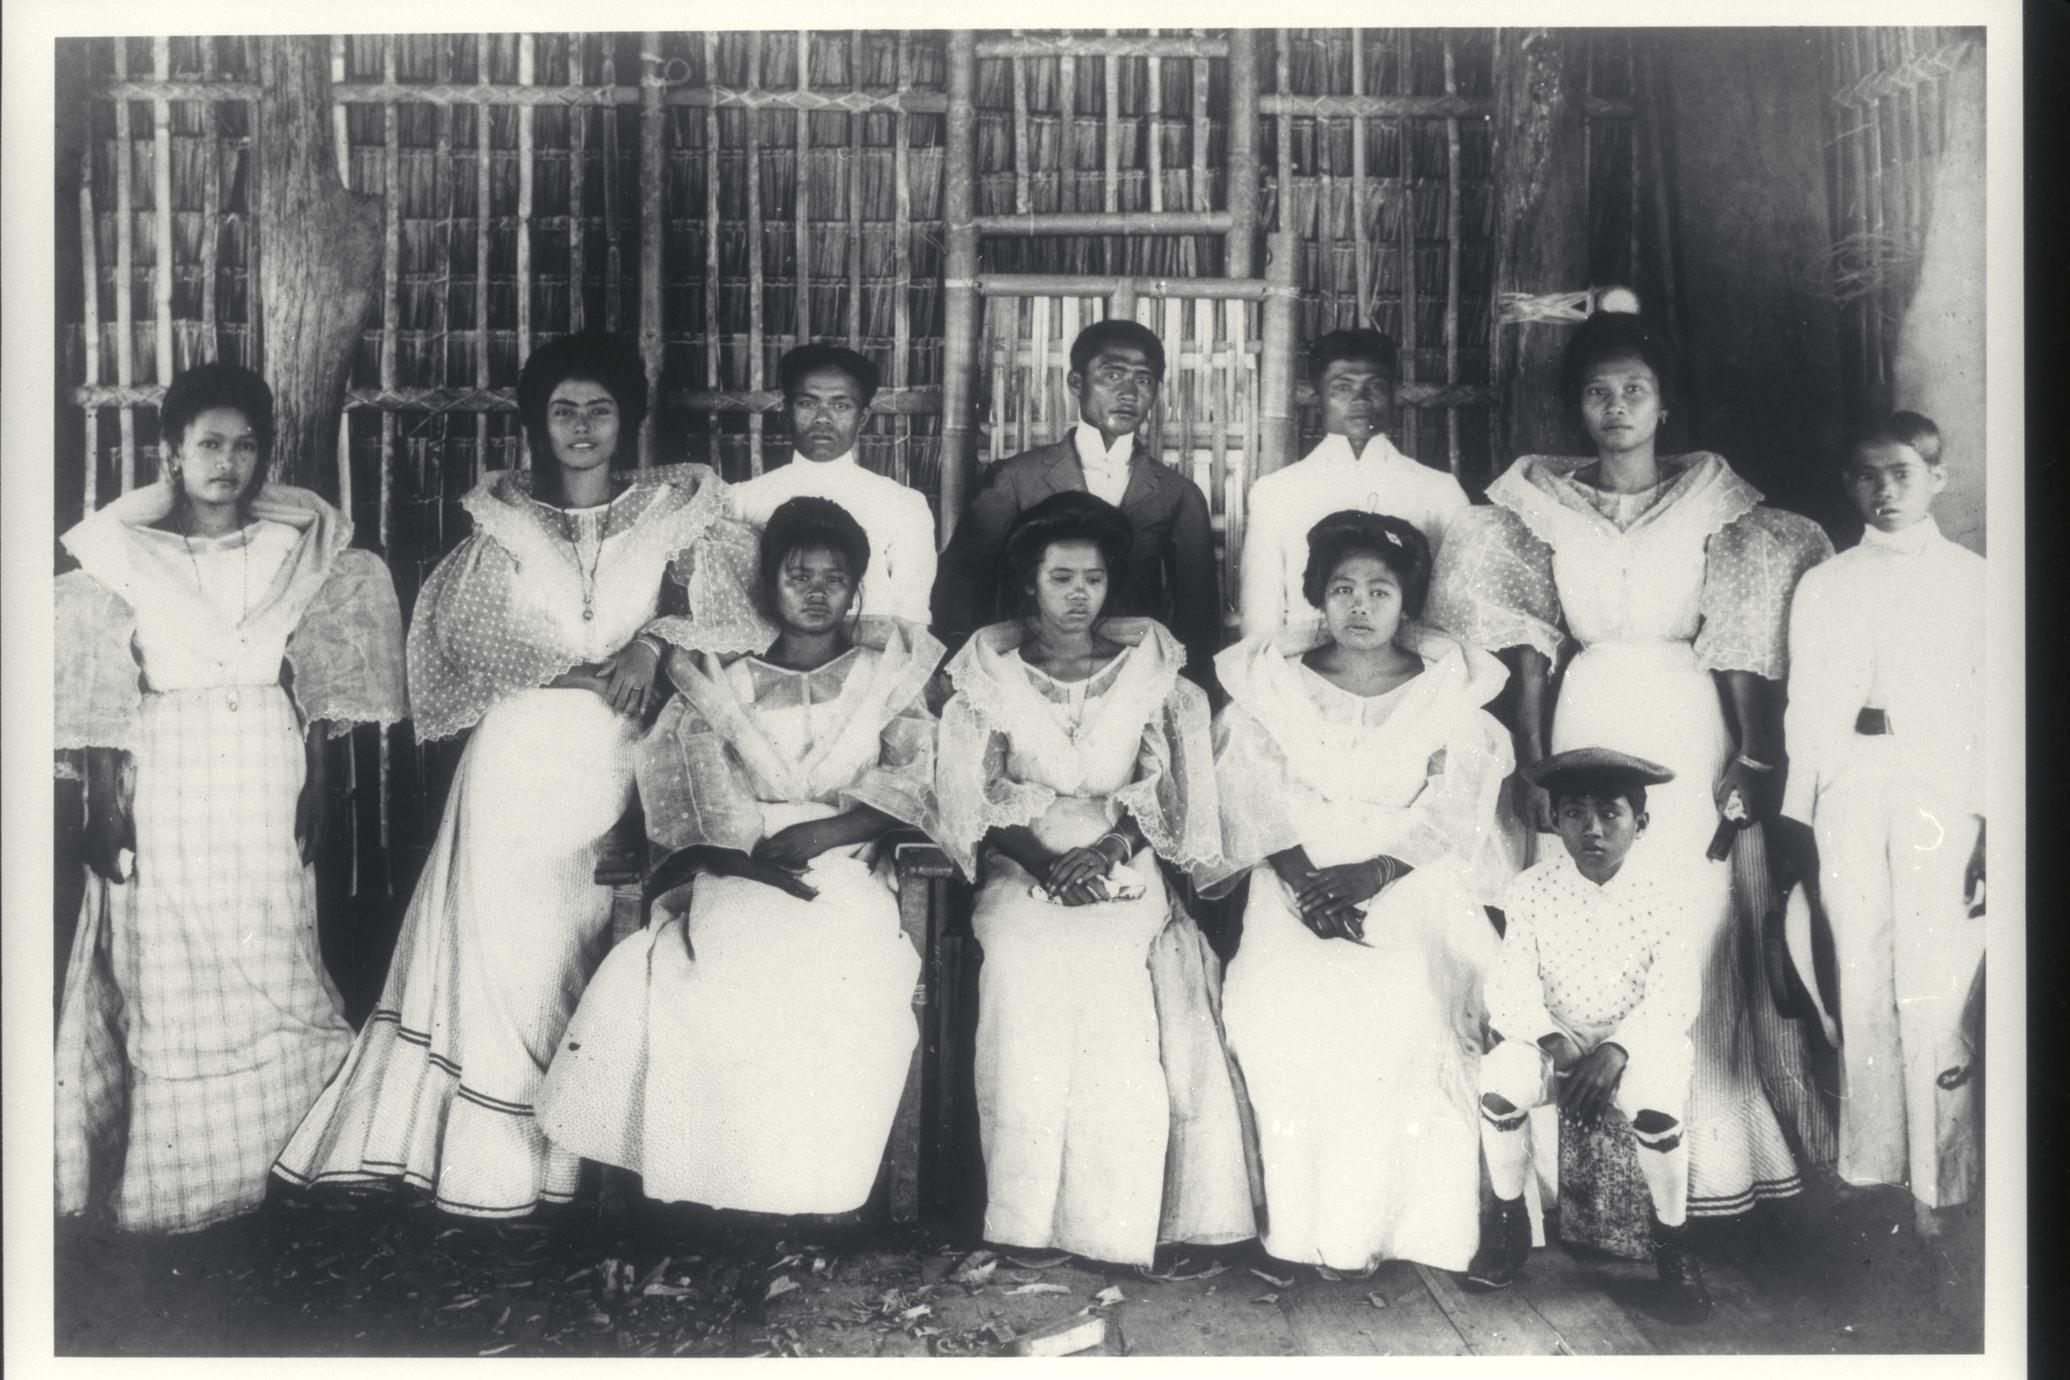 Group of Visayans, Iloilo, early 1900s